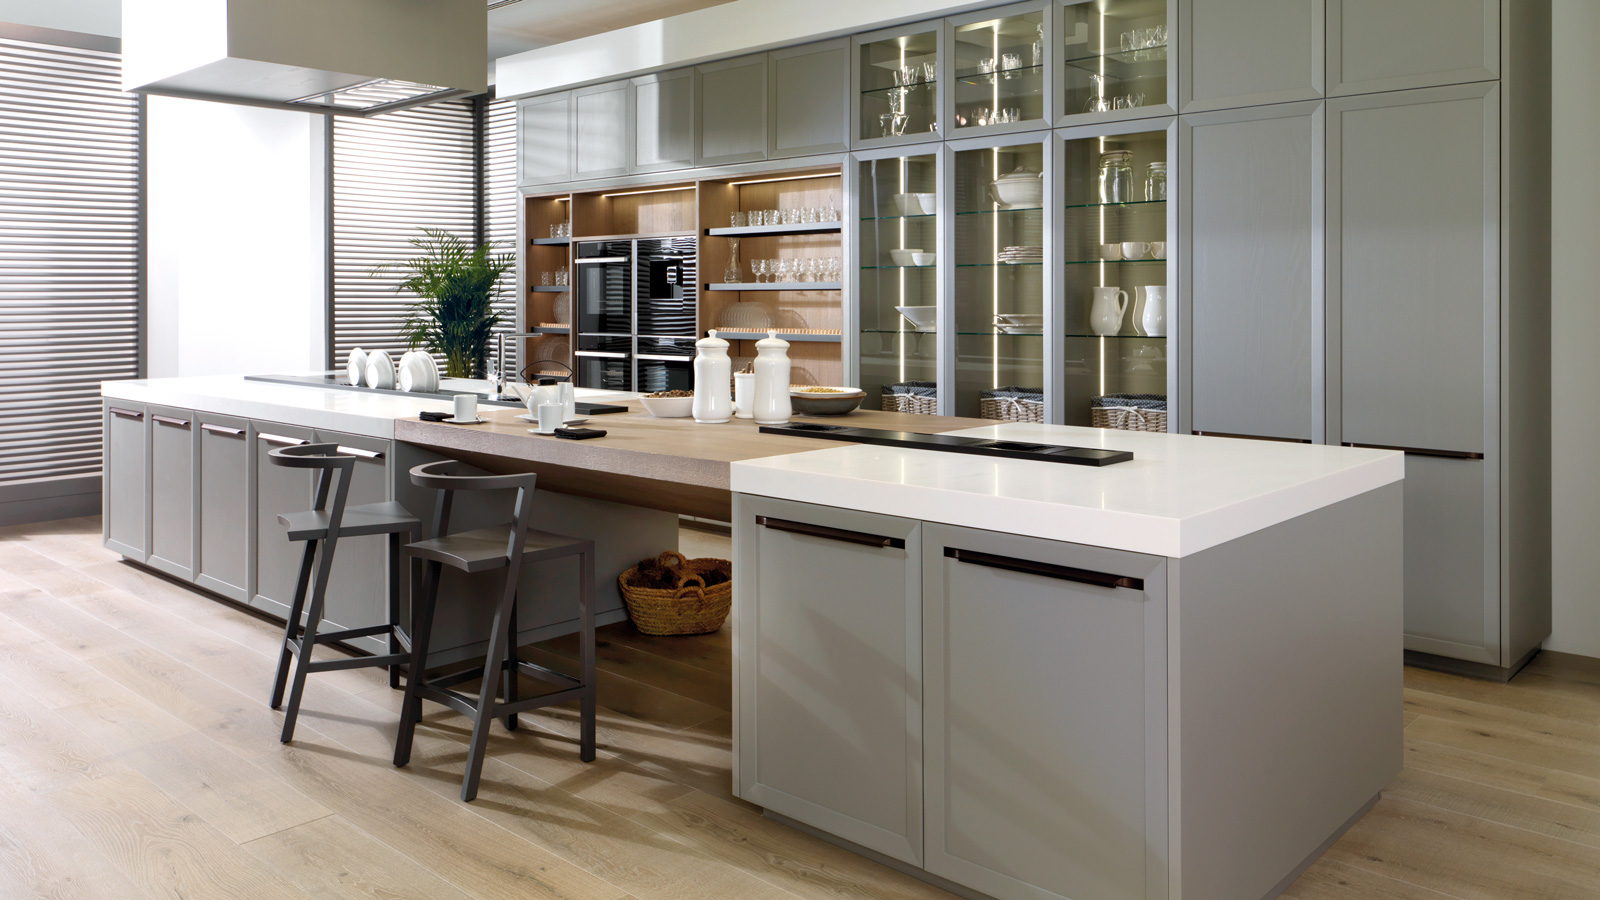 Six ideas for rustic kitchens with Porcelanosa style